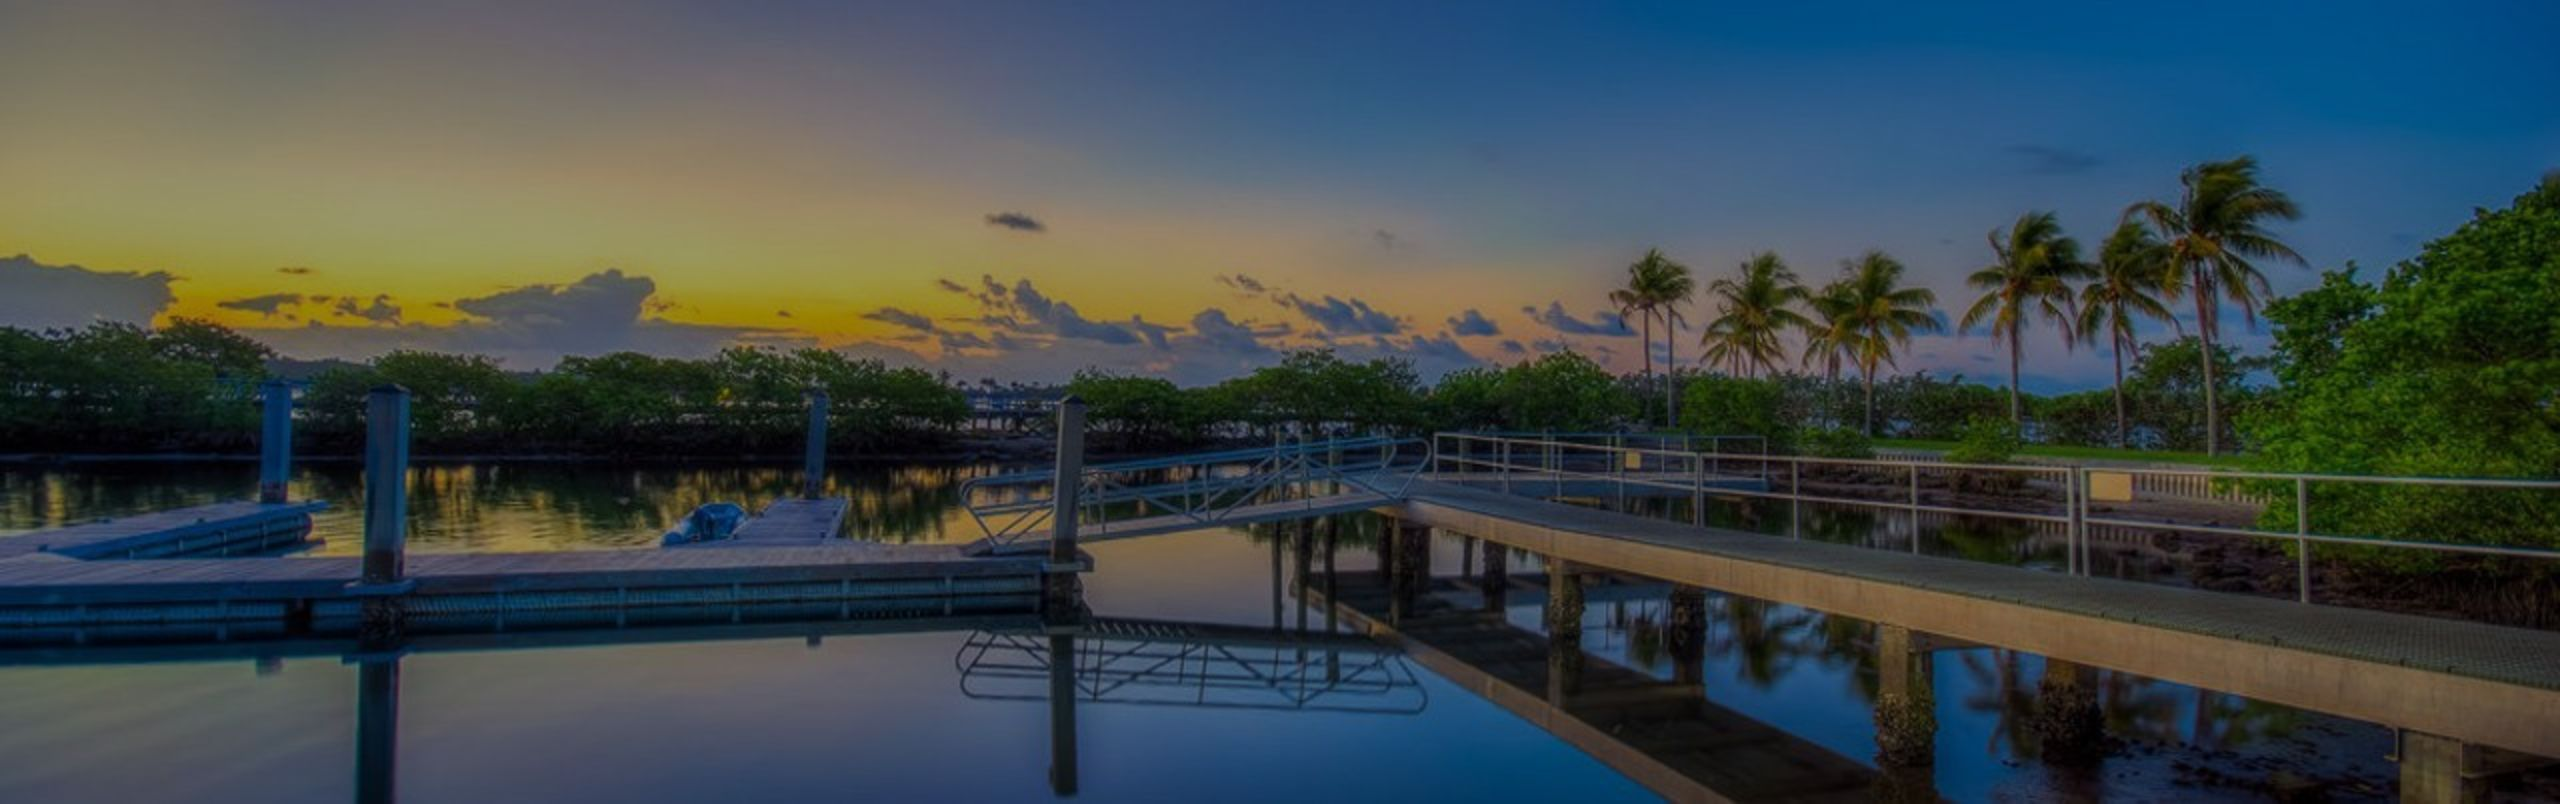 Buying a House in Boynton Beach: First, Fortify Your Position